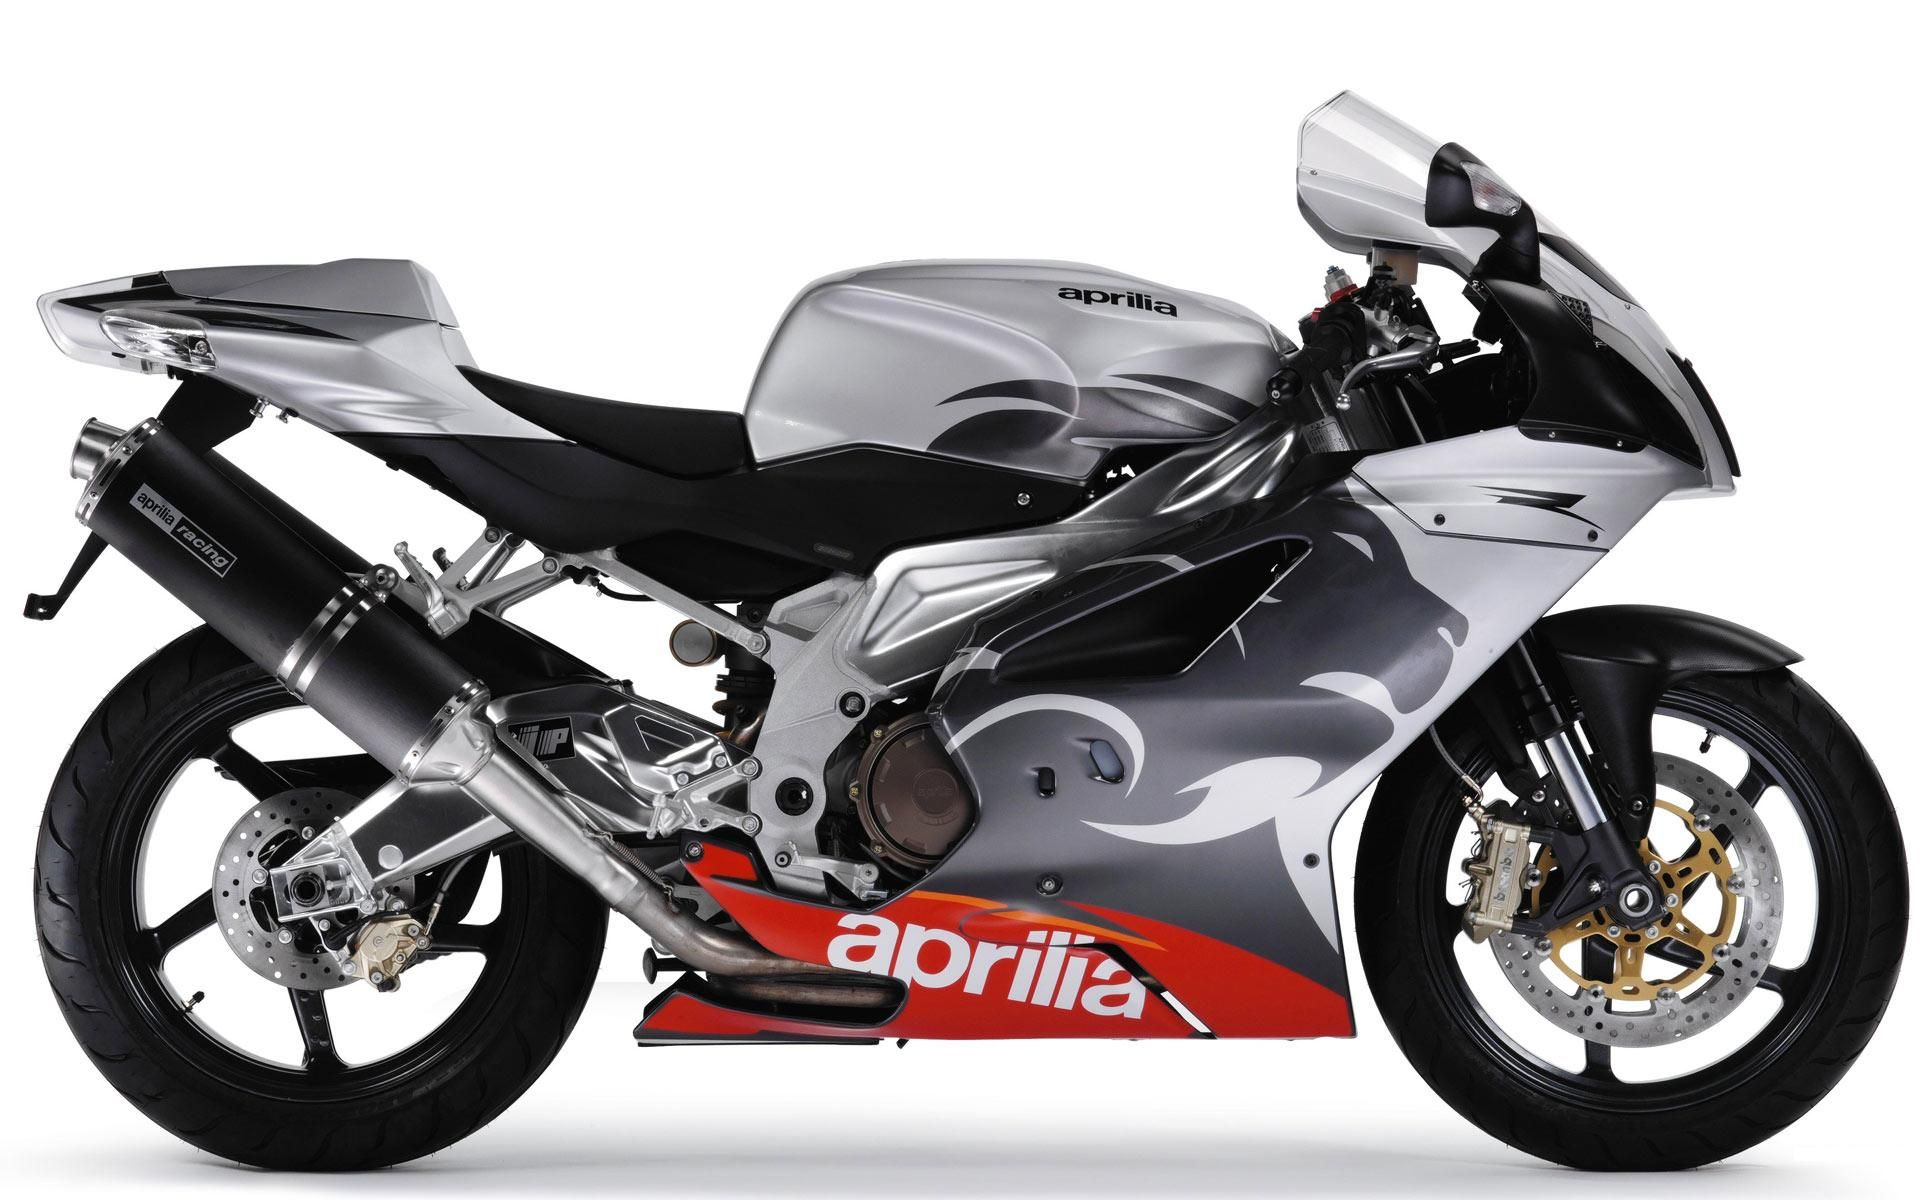 Aprilla RSV 1000 R Wide WallPaper HD - http://imashon.com/w/moto/aprilla-rsv-1000-r-wide-wallpaper-hd.html